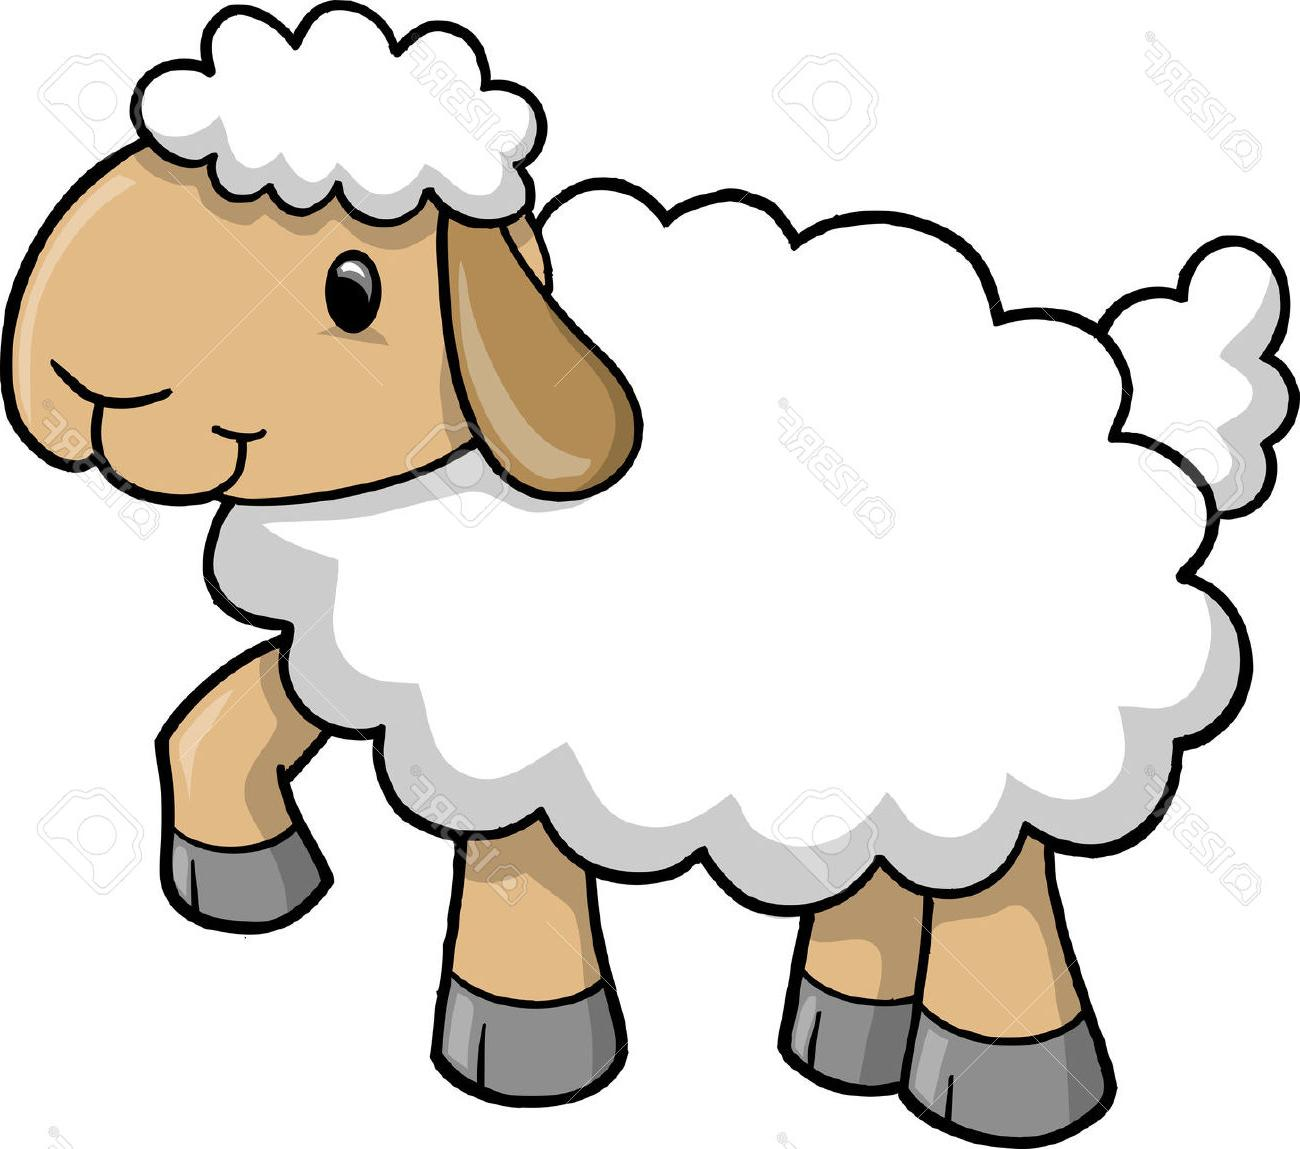 Sheep clipart. Station